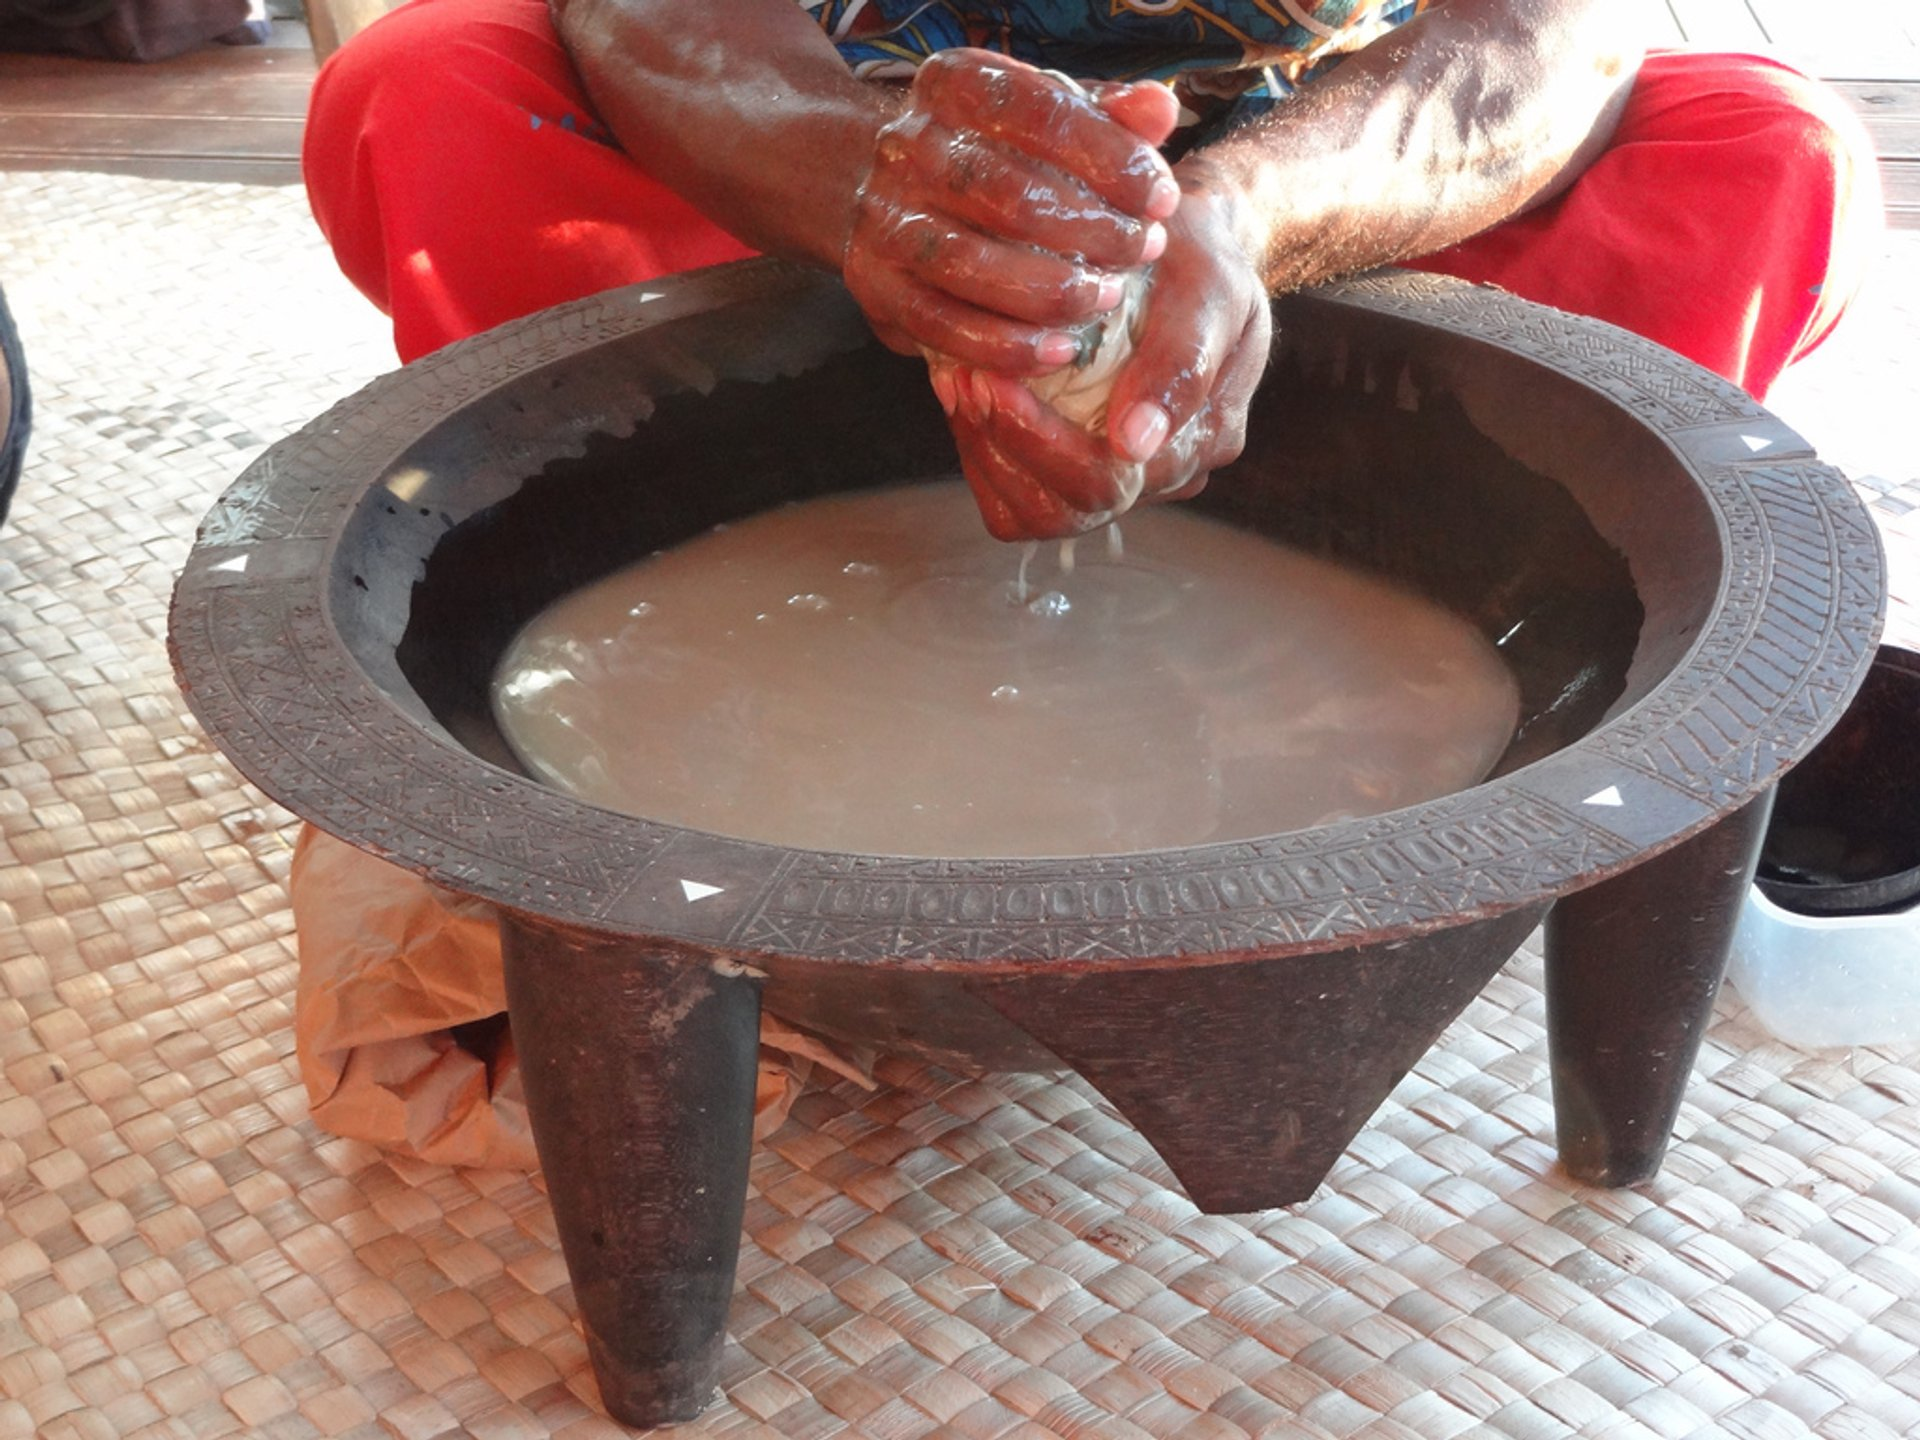 Kava (Yaqona) Ceremony in Fiji - Best Season 2019